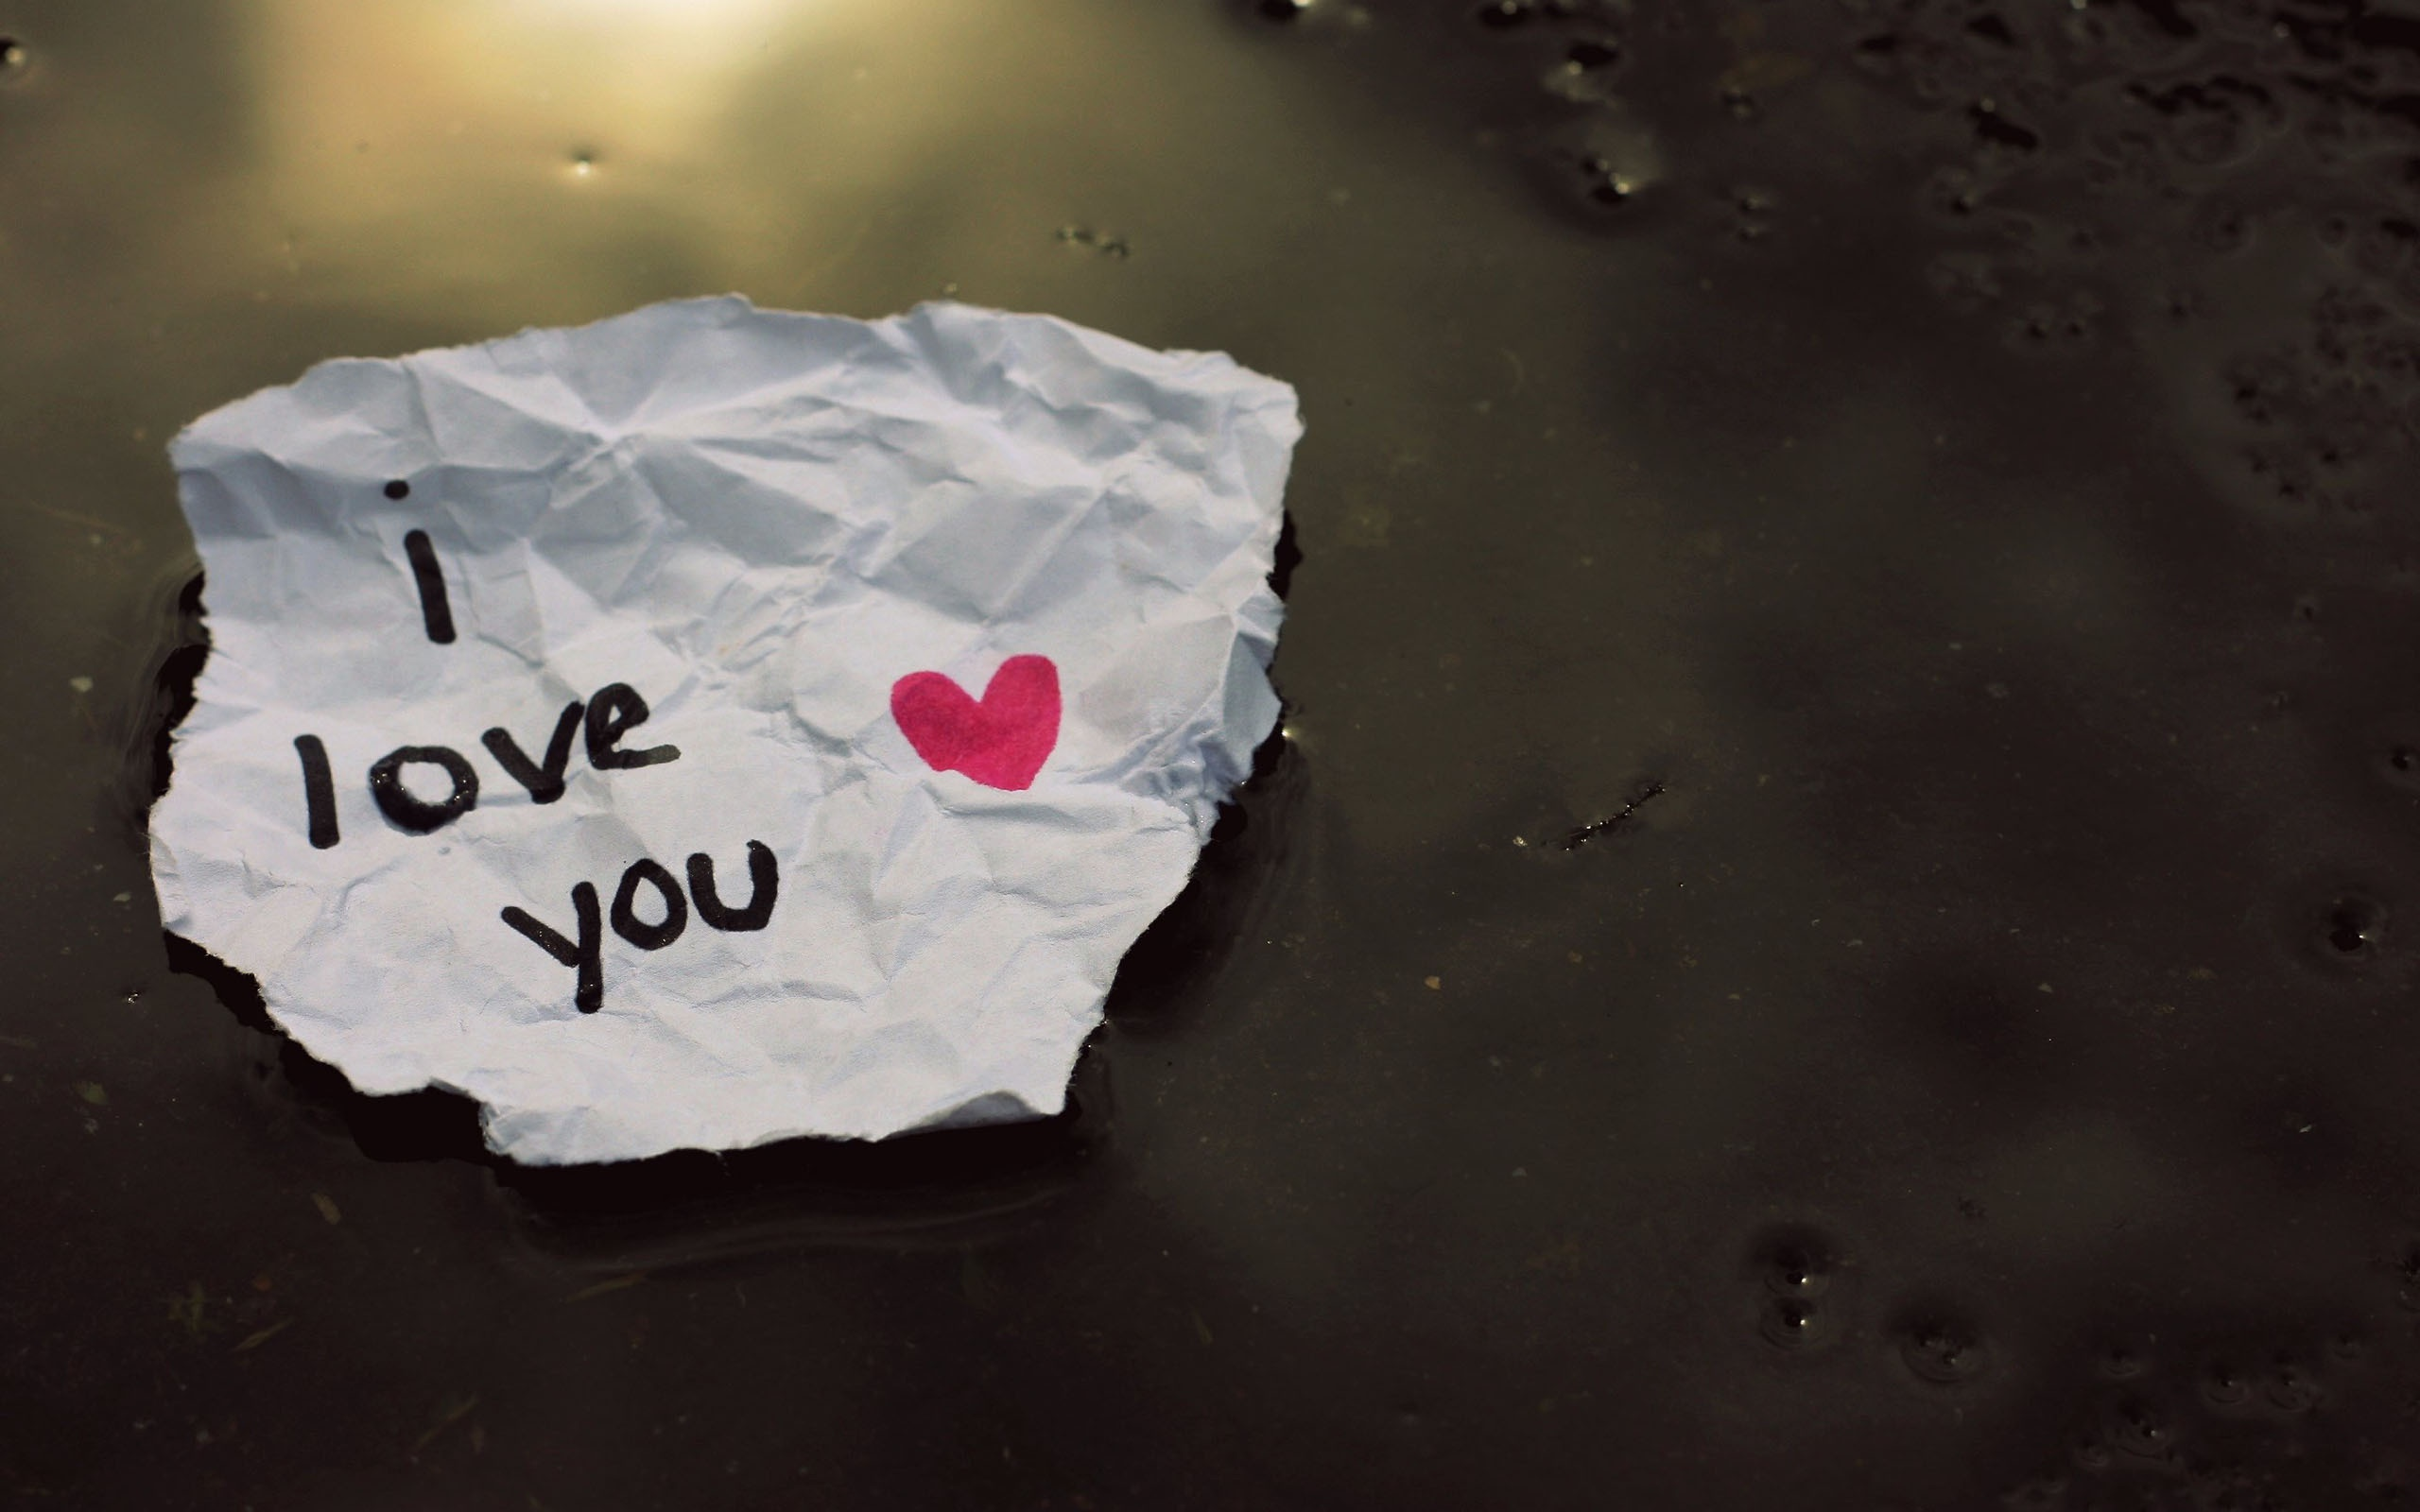 2560x1600 I love you on paper desktop Pc and Mac wallpaper